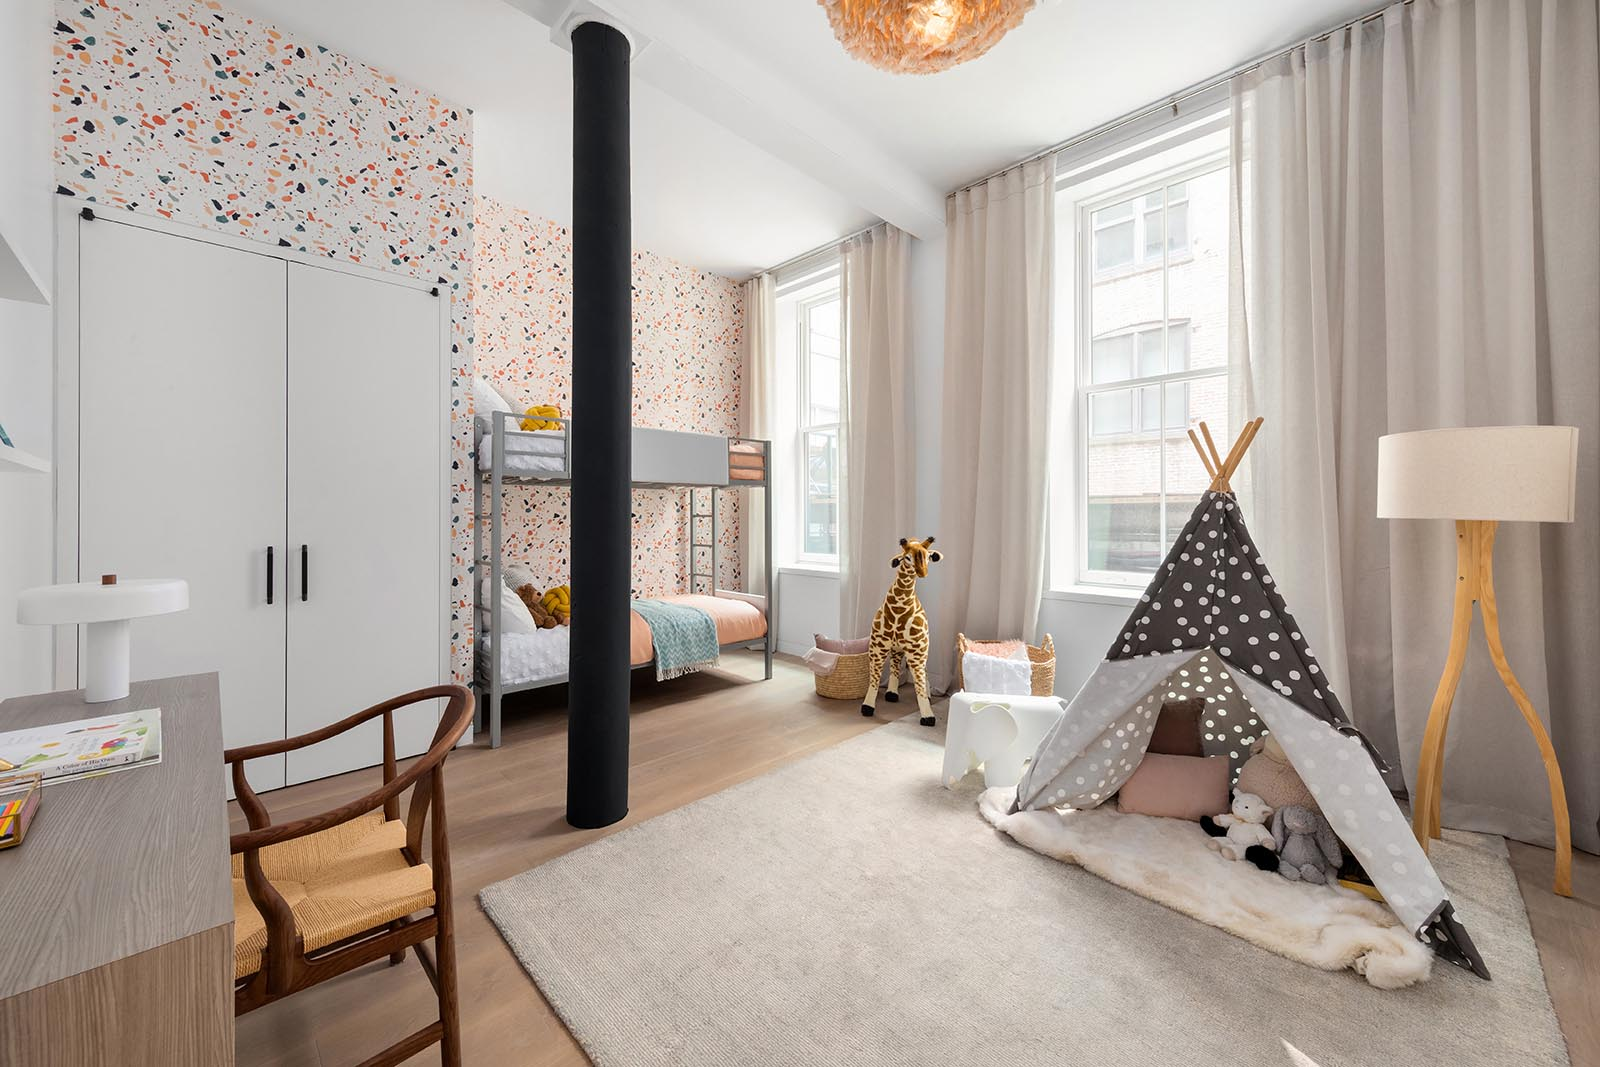 In this modern kid's bedroom, colorful wallpaper has been used to create a fun backdrop for the bunk beds, while the open space has been designated as a play area.